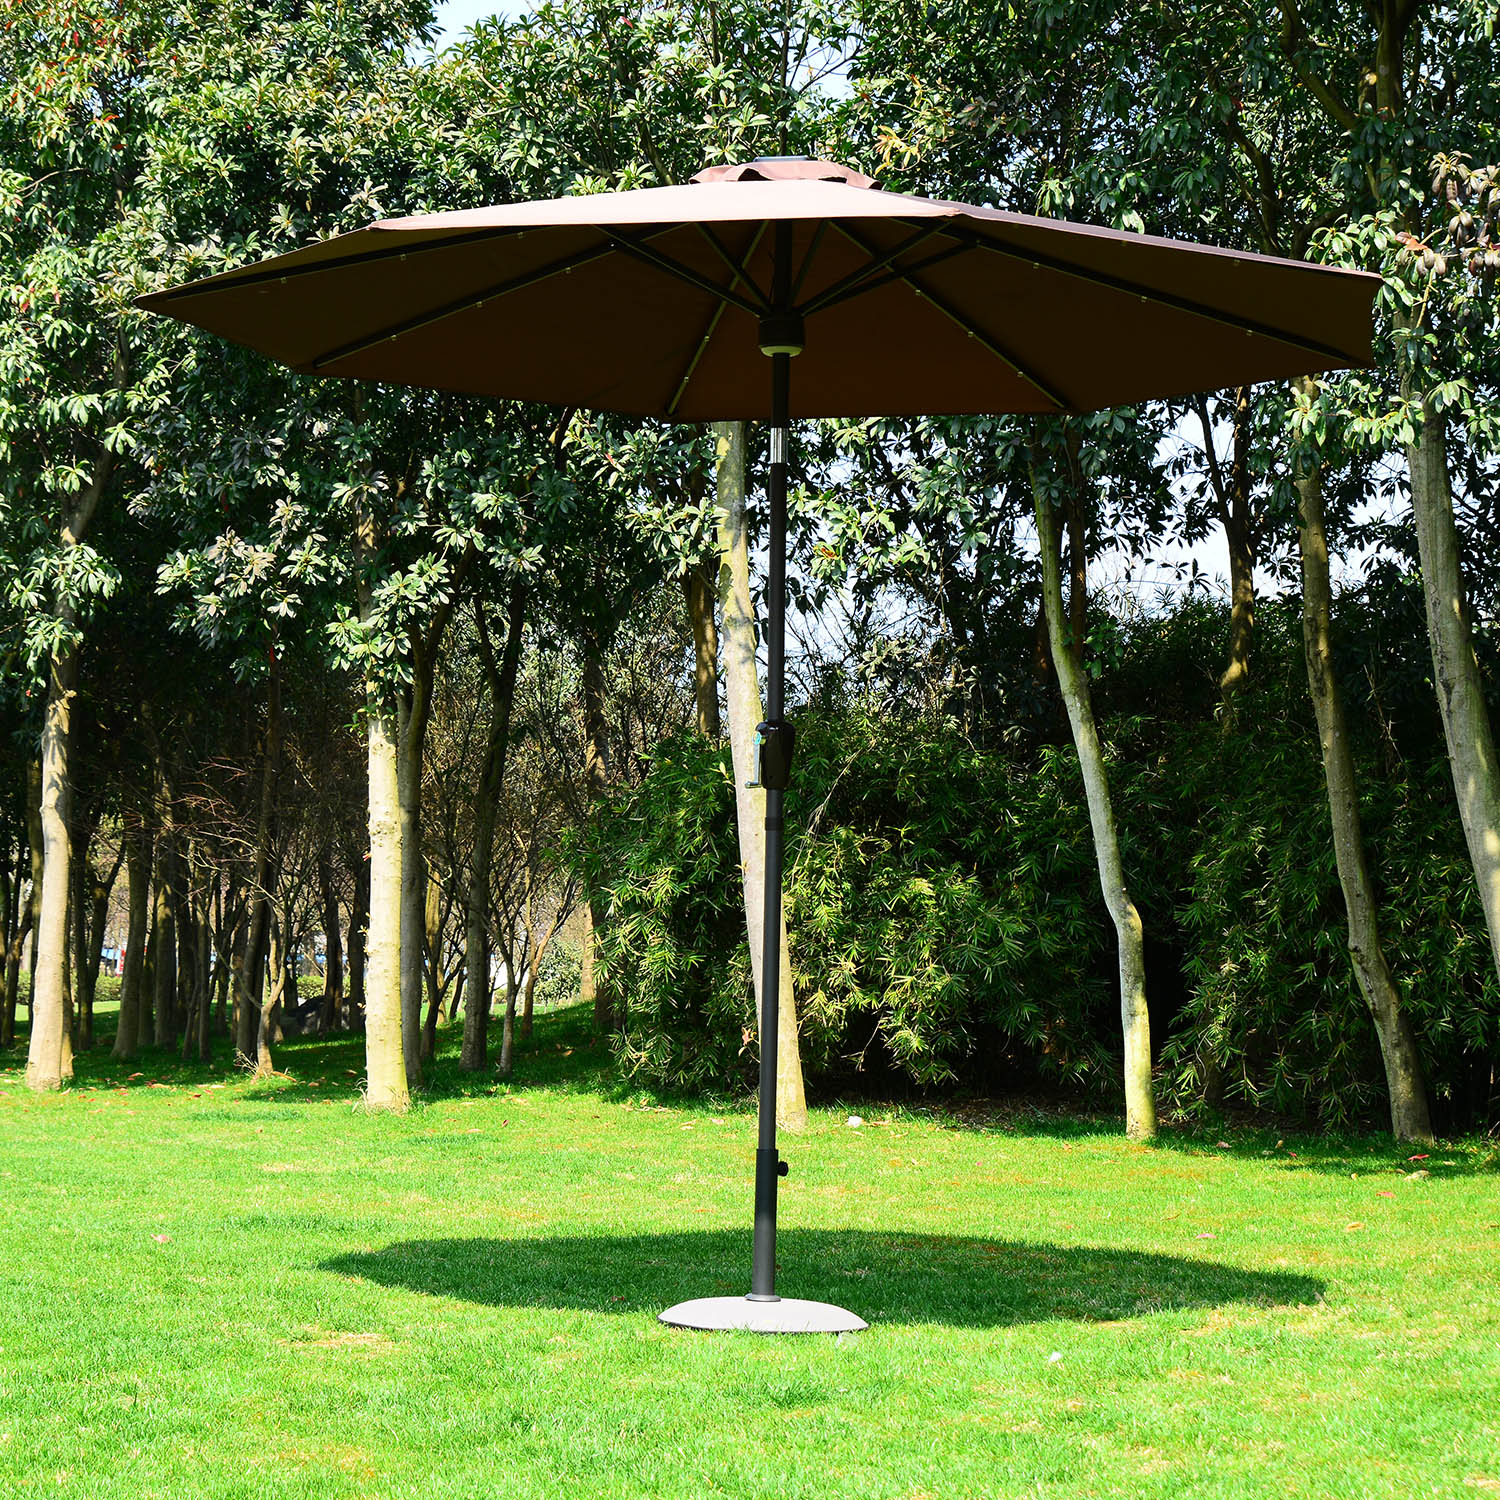 Image of CAD $98.99 Outsunny 9' Solar LED Market Patio Umbrella w/Bluetooth - Coffee / CLEARANCE Outdoor for and GardenSunshade w/ Bluetooth Speaker Canada 25093571770